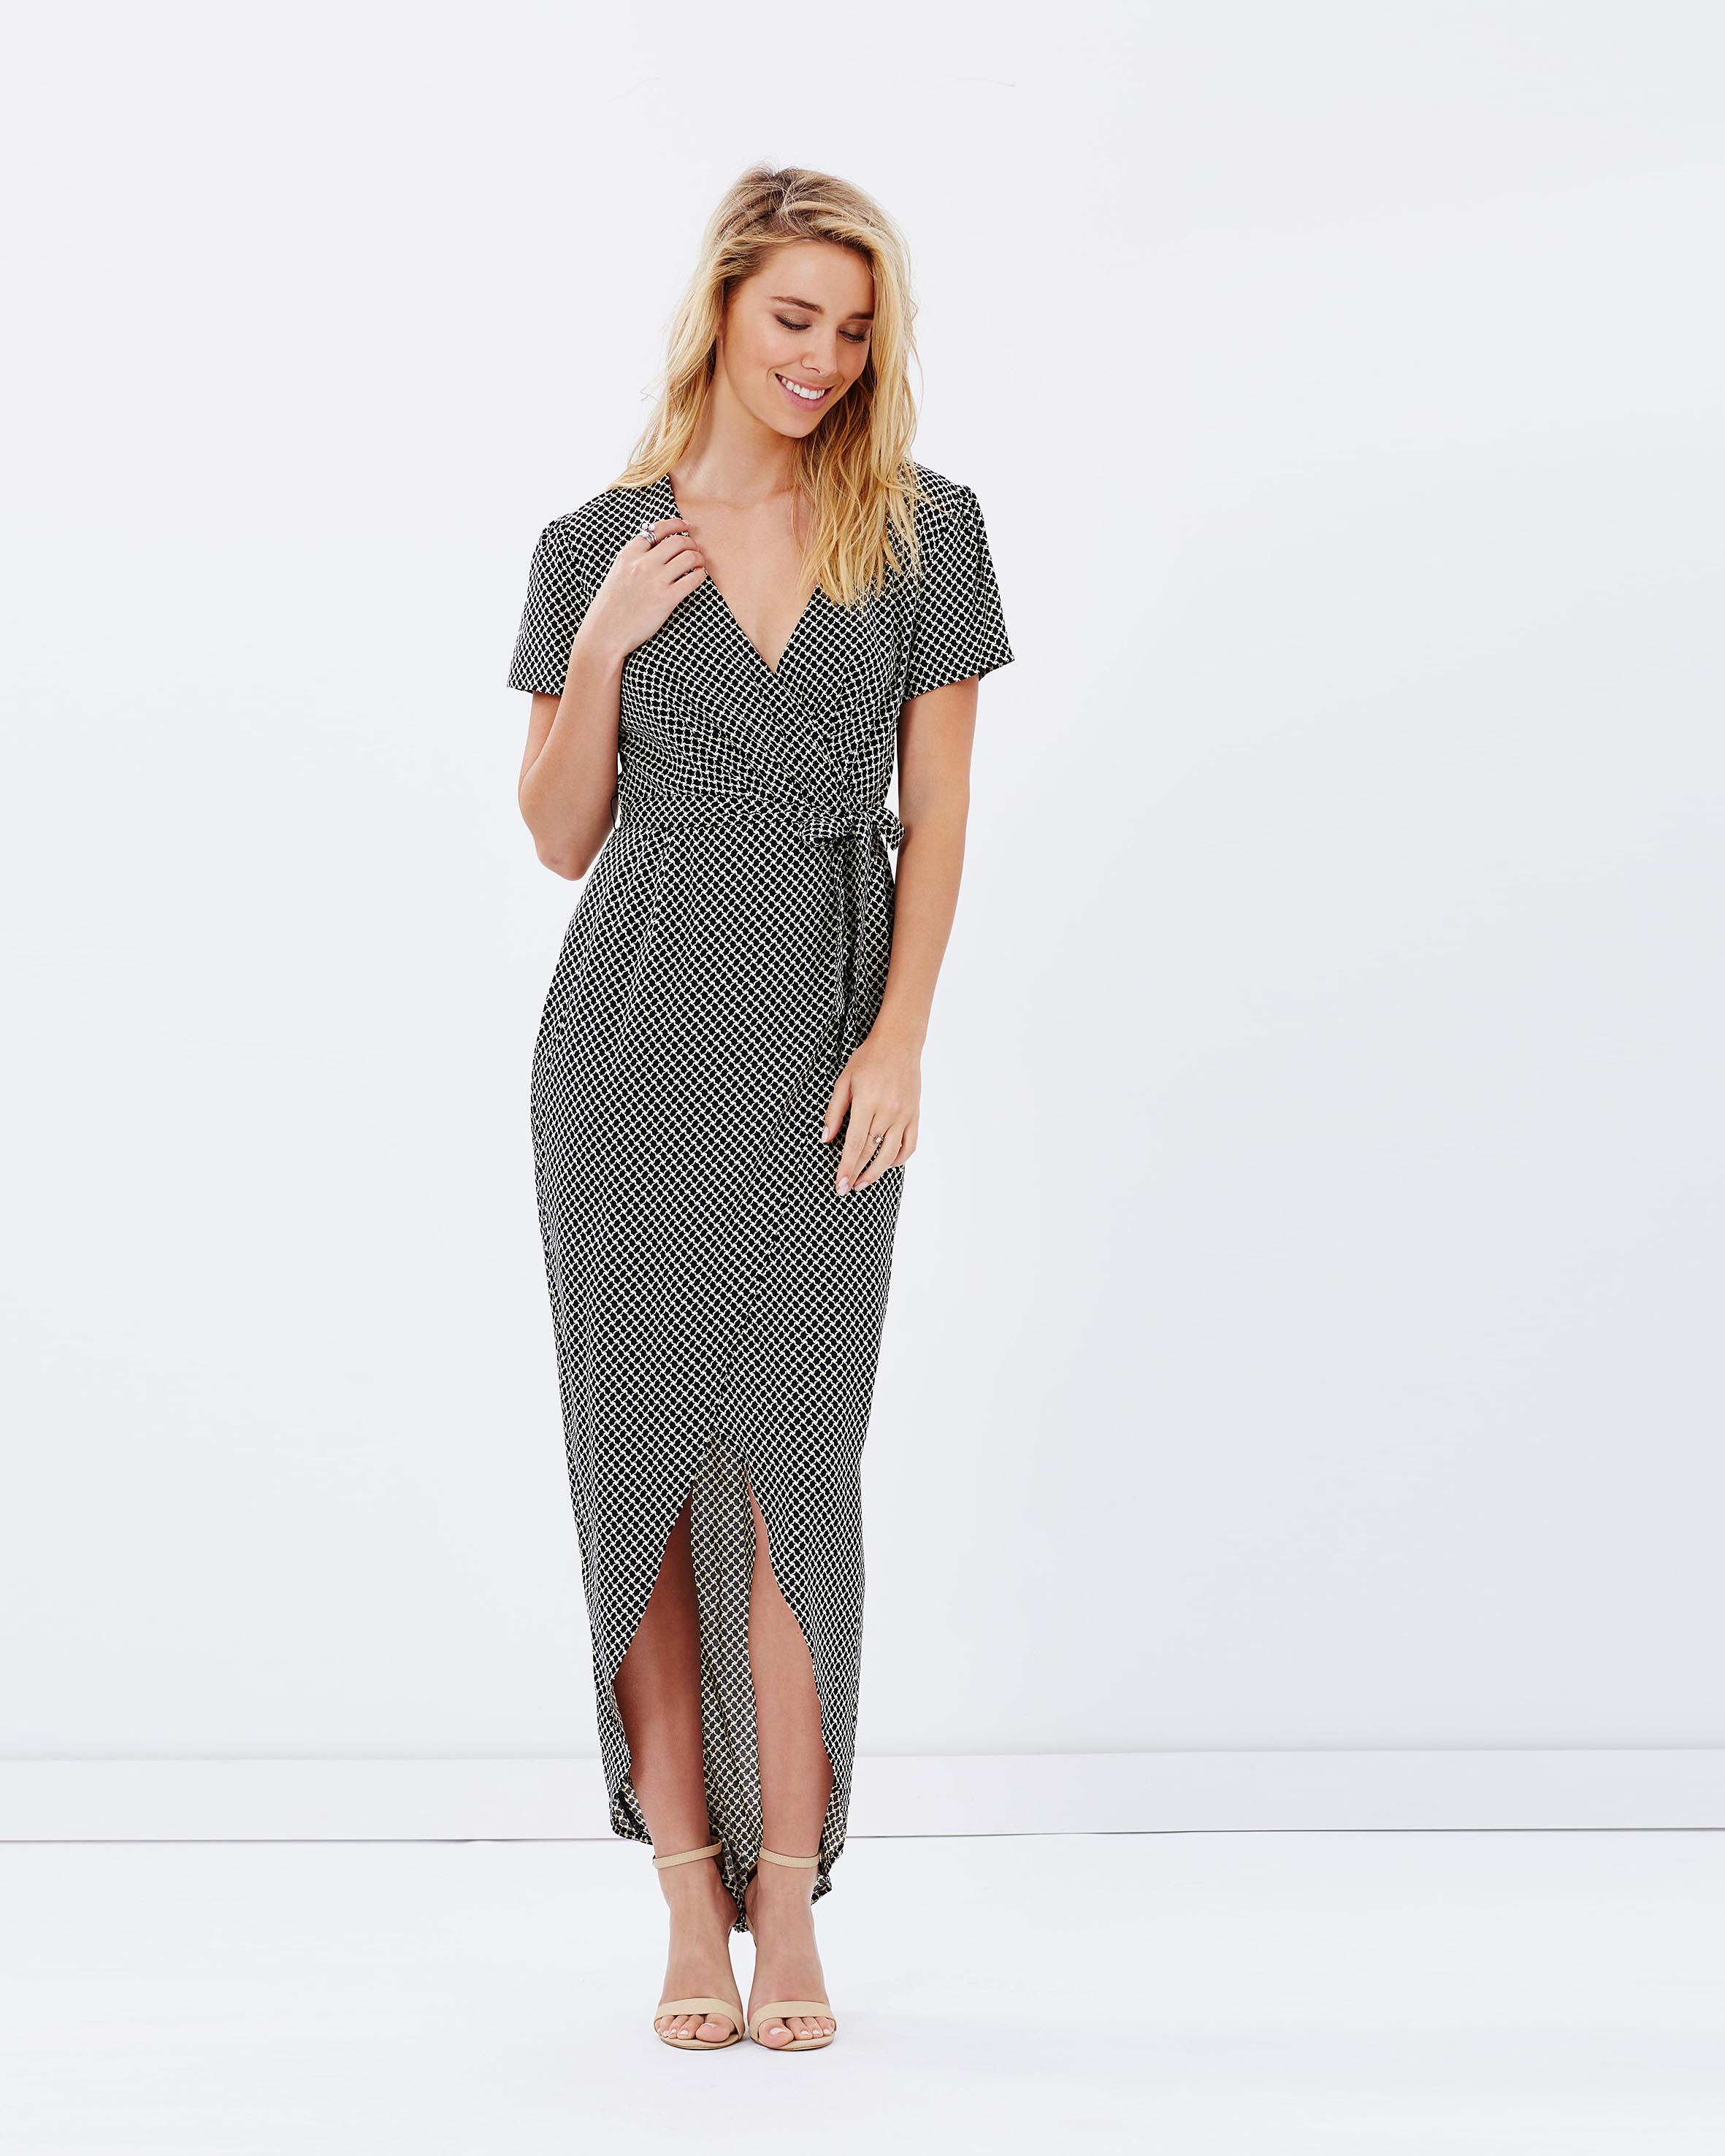 mnogodva.gq: Shop Maxi dresses - Party dresses - women - online at great prices and with fast delivery. Choose from a wide range of new arrivals every day.